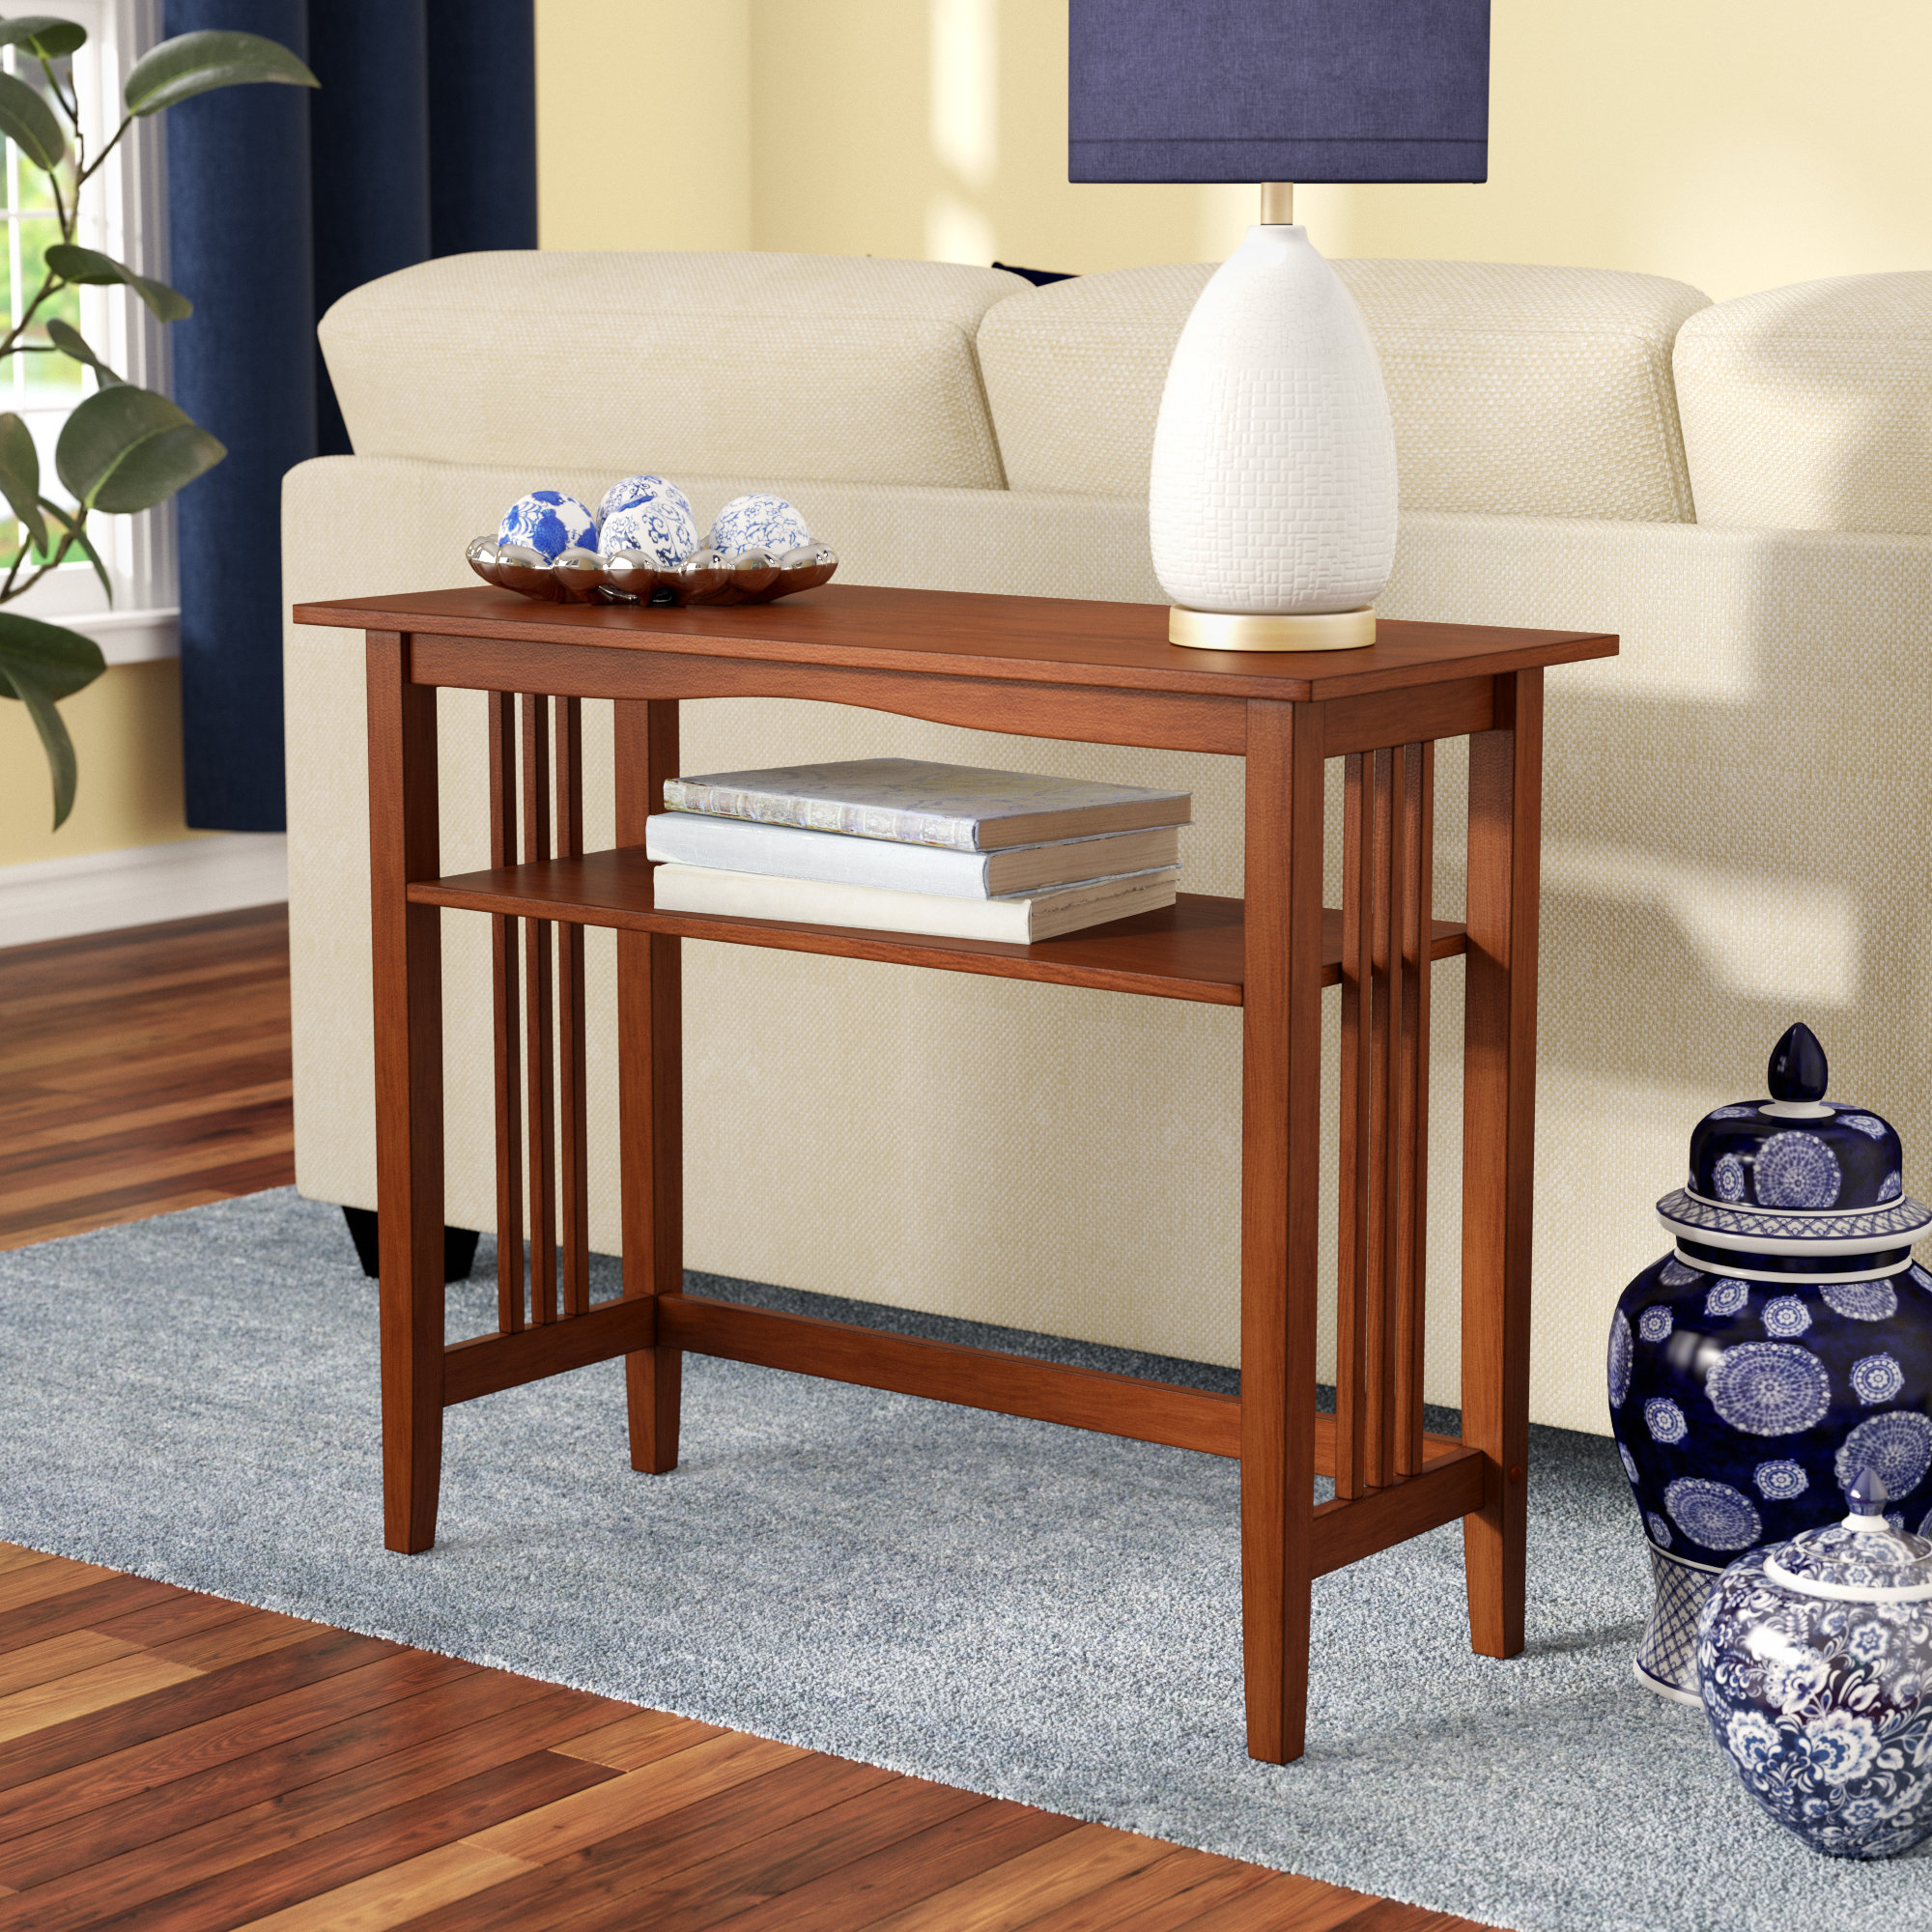 Small Corner Console Table | Wayfair Regarding Layered Wood Small Square Console Tables (View 7 of 20)